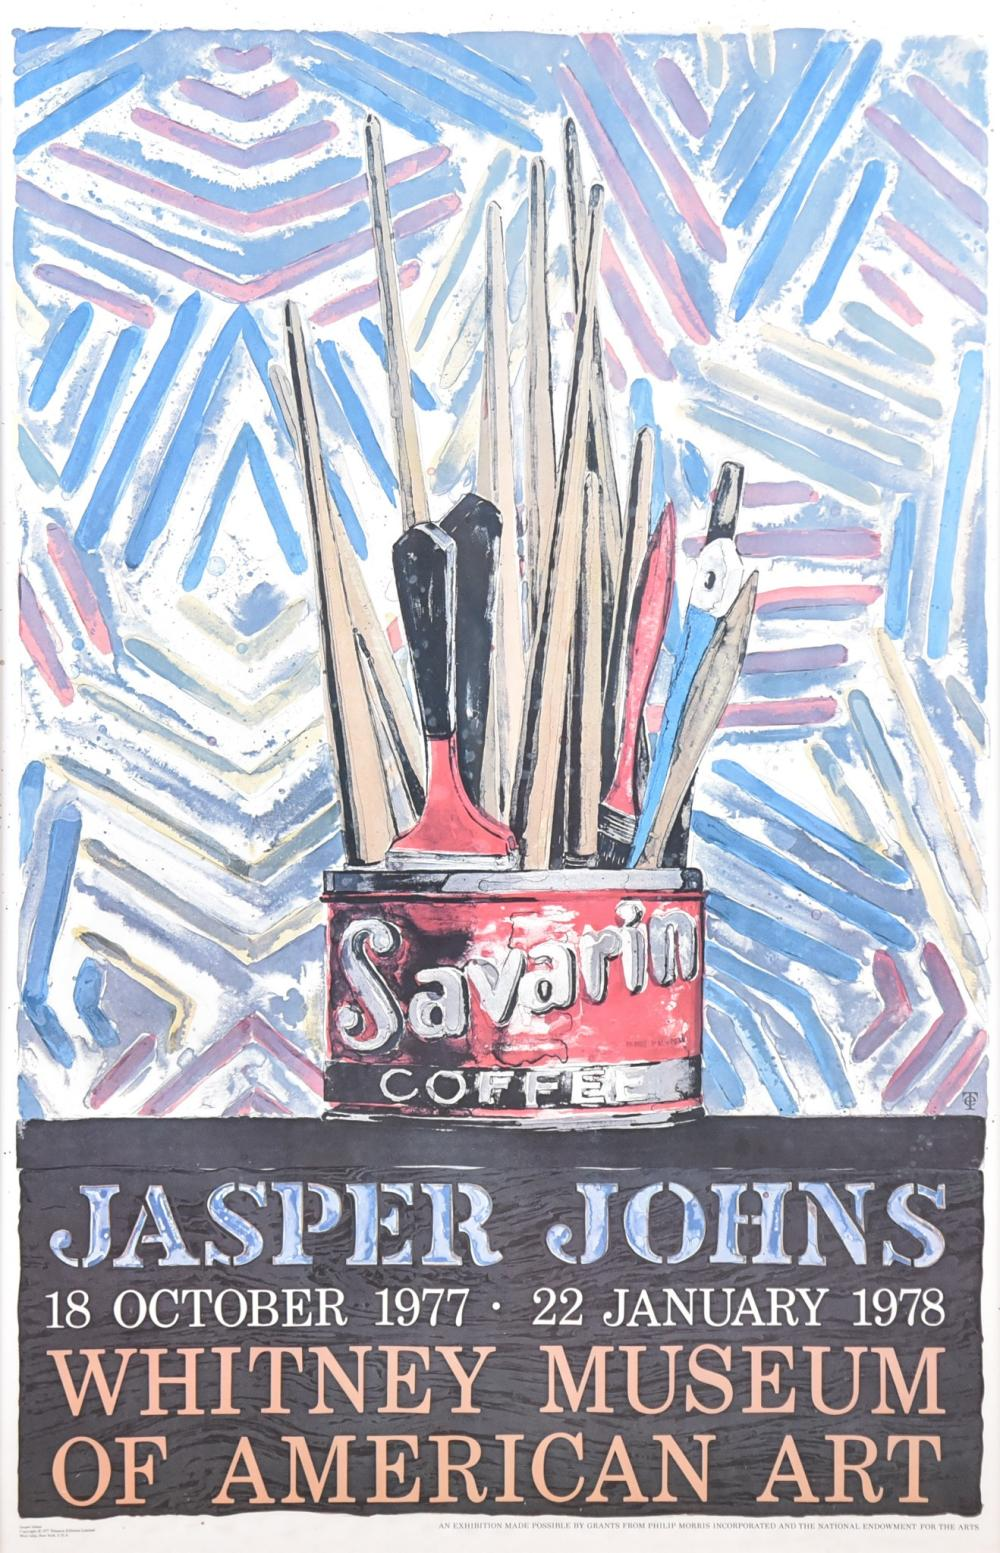 """Jasper Johns, American (b. 1930), """"Savarin"""" Whitney Museum of American Art Exhibition Poster, offset lithograph, 45 1/2 x 29 1/2 inches"""